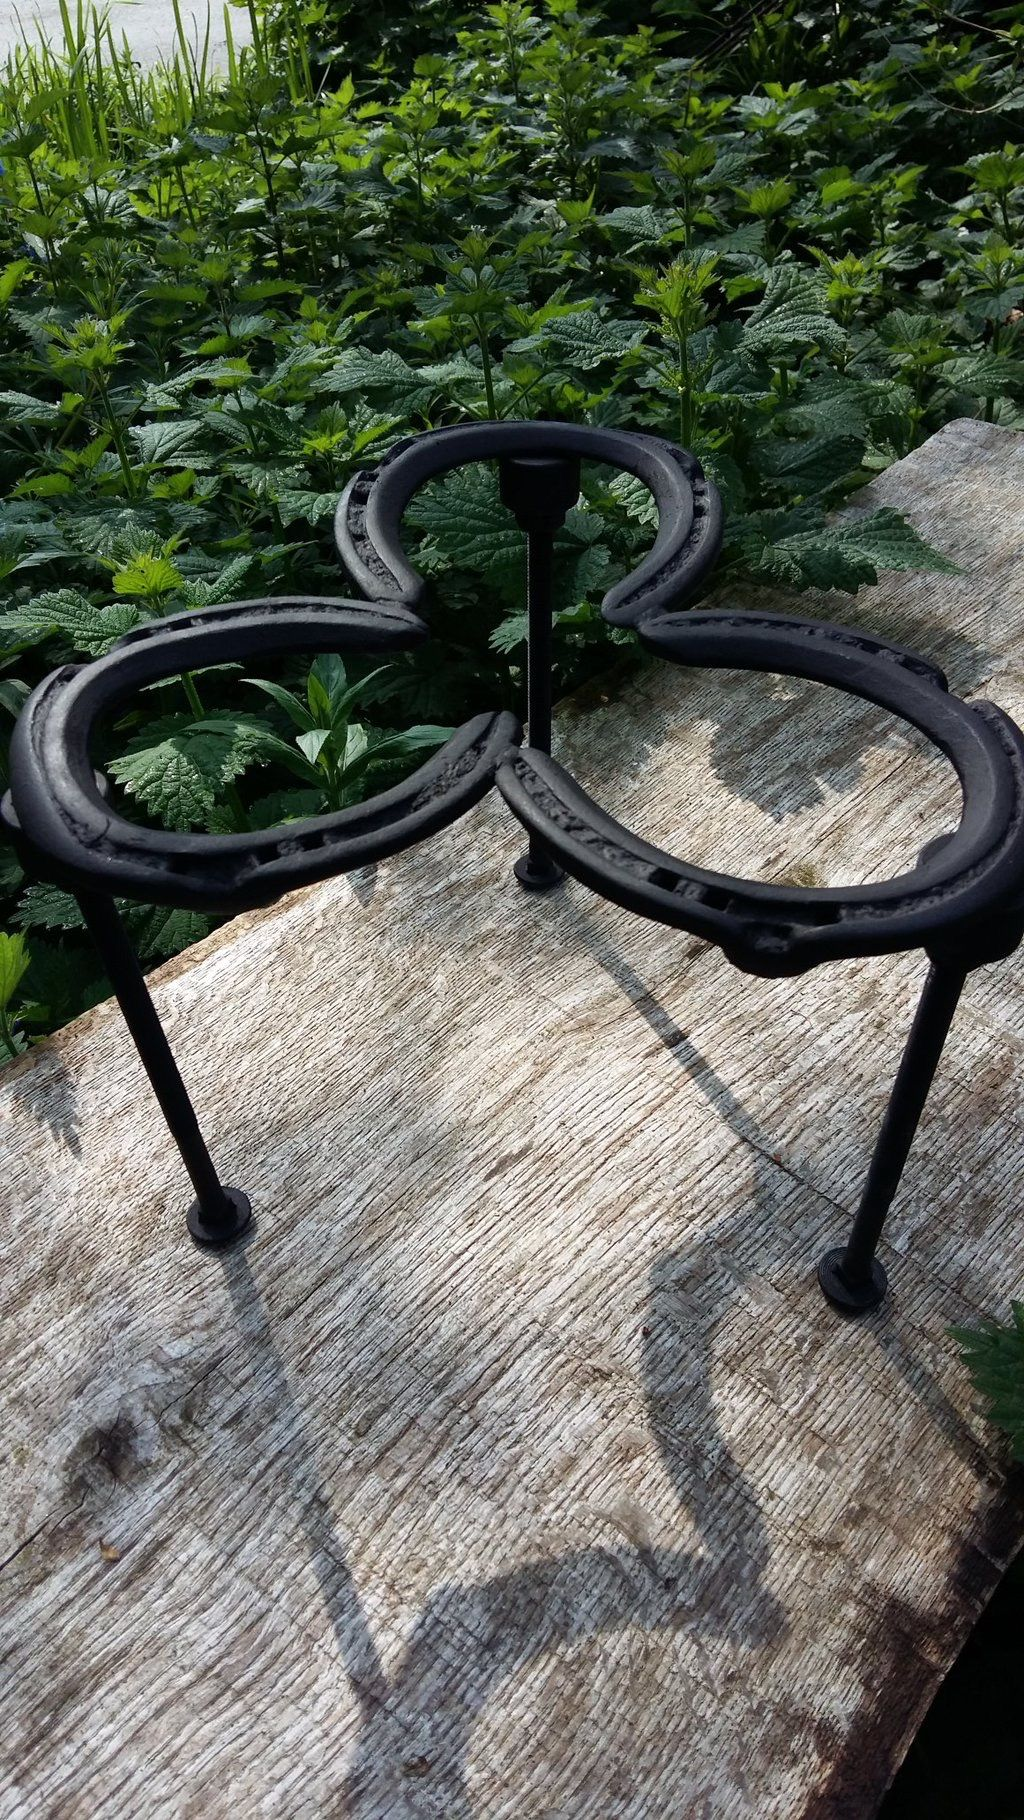 Staff here at Wiltshire Wildlife Trust have been creative and reused / upcycled some unwanted horseshoes to make a kettle stand! A great idea for cooking over a campfire! If you've made something out of rubbish, share it with us using #MyRubbishIdea on Twitter @Slimbinswilts!   #reuse #upcycled #horseshoe #campfire #forestschool #wiltshire